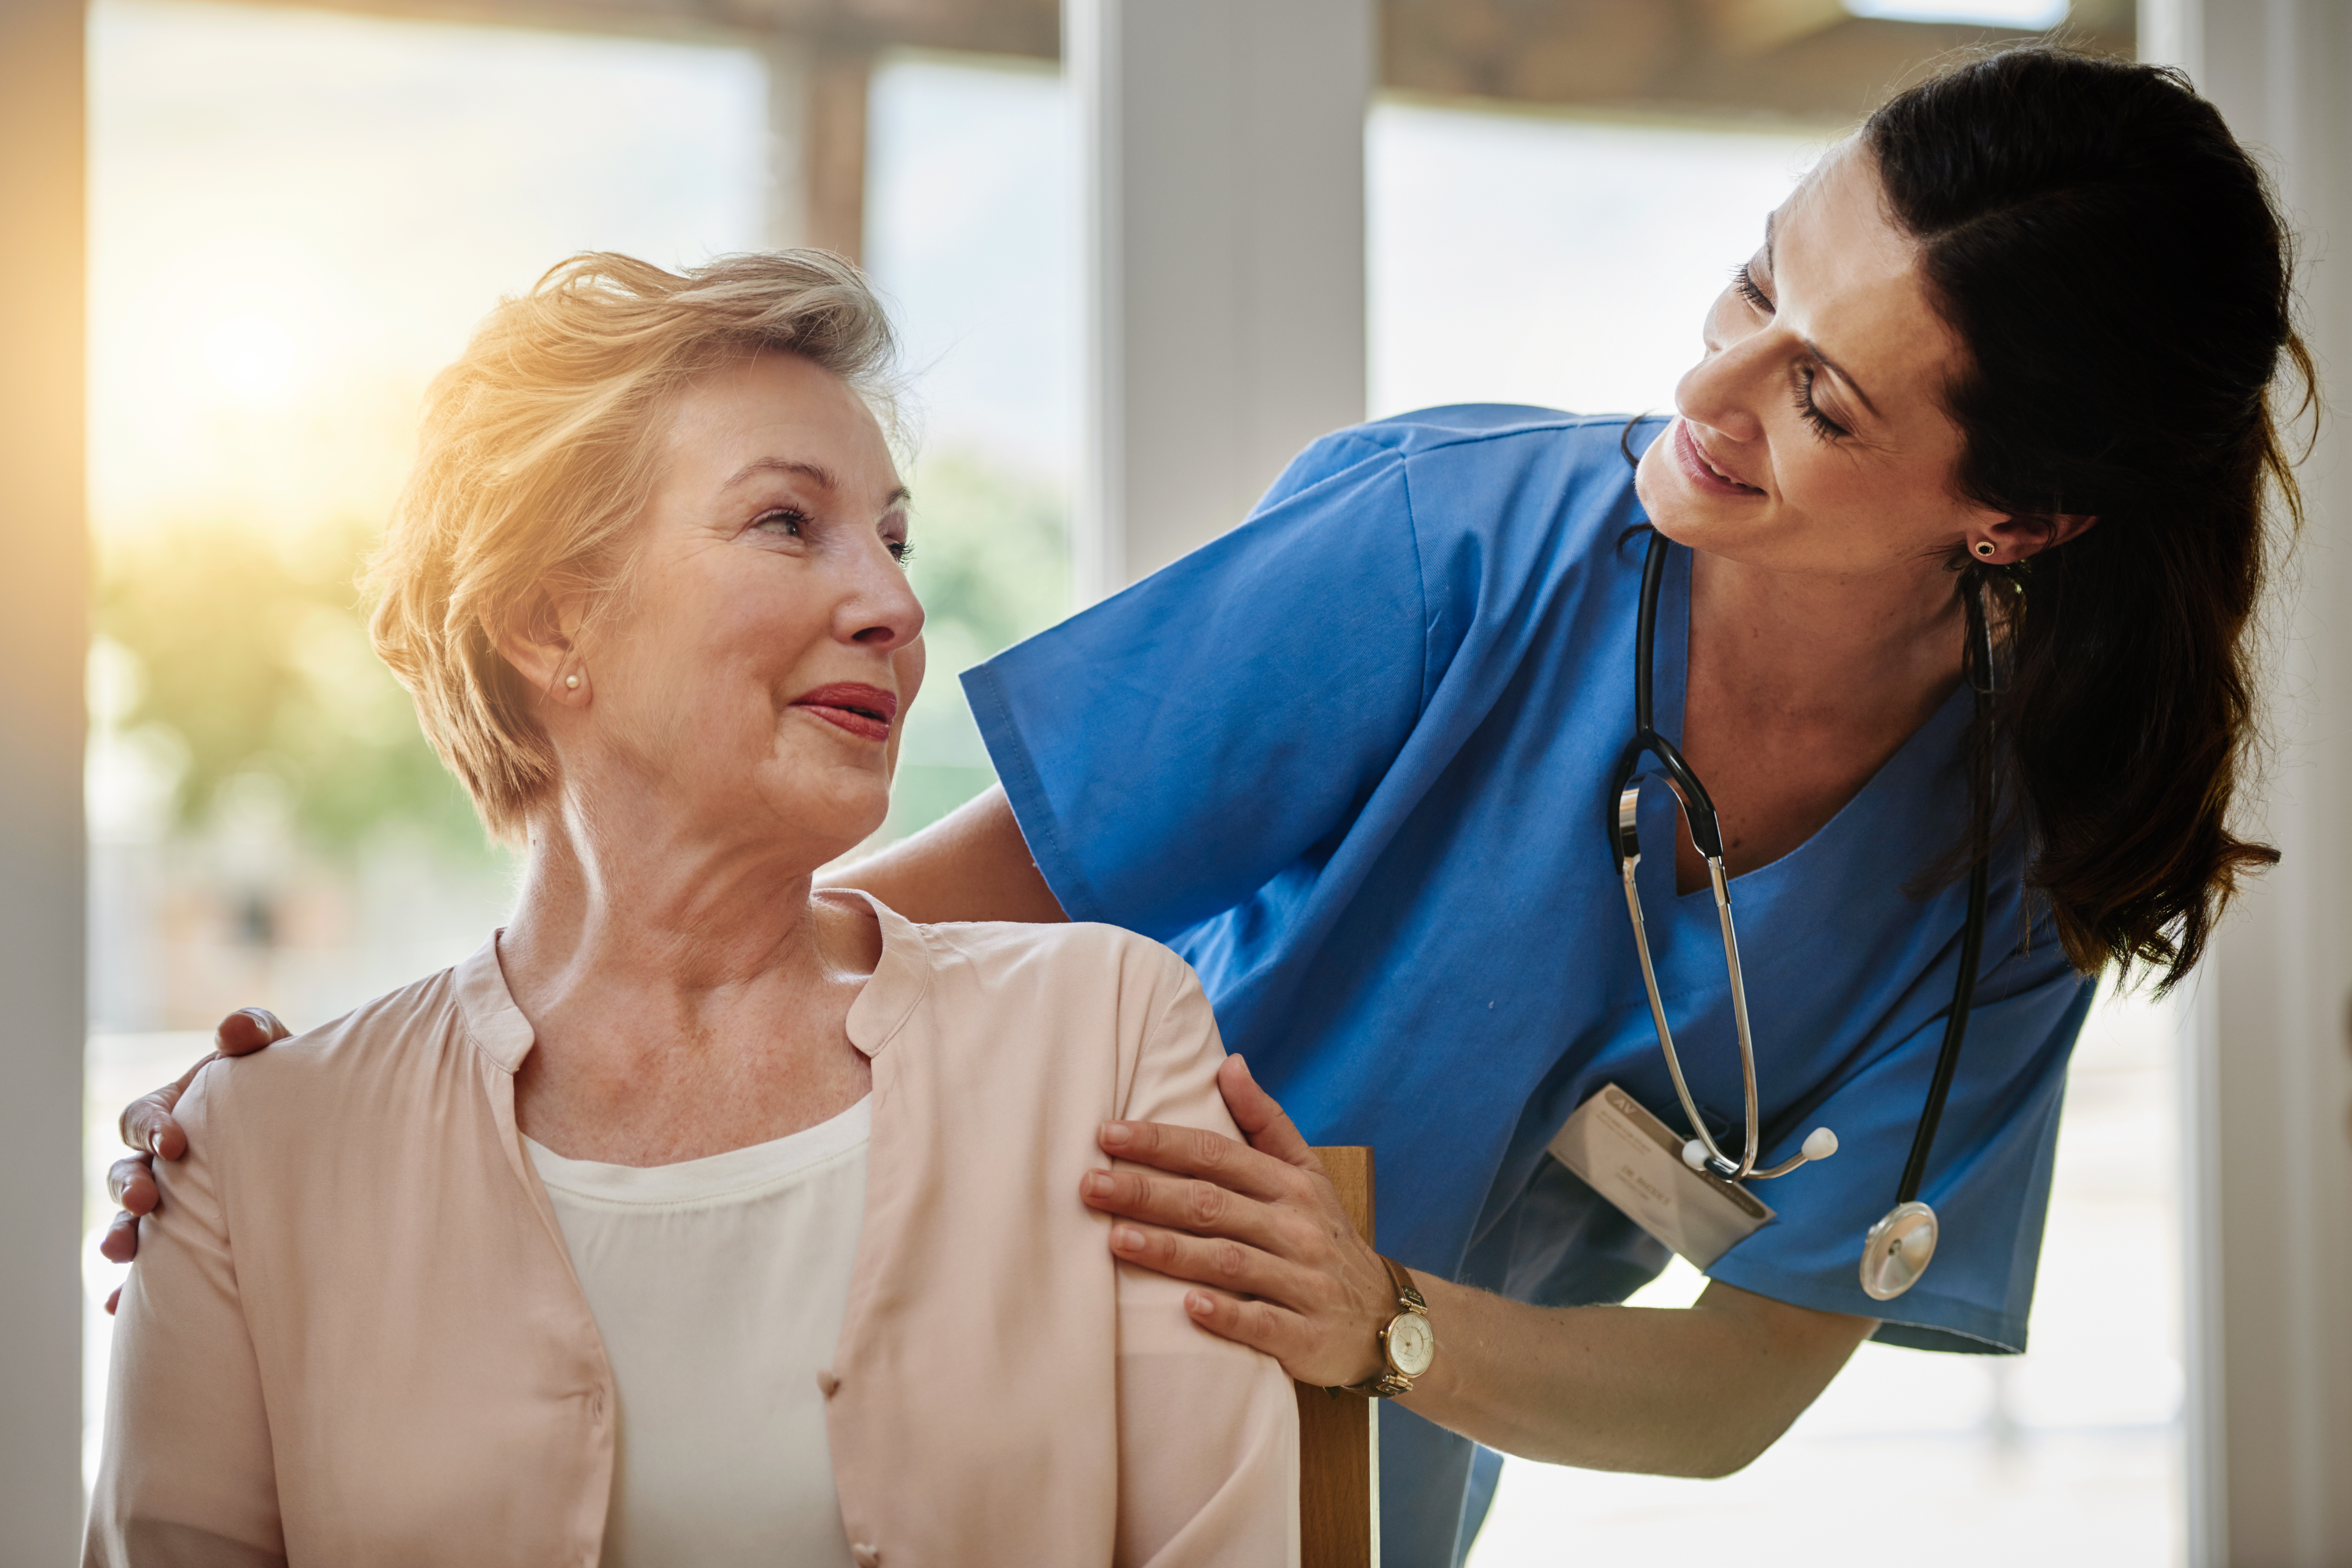 Examples Of Work Related Goals For Caregivers And Nursing Assistants